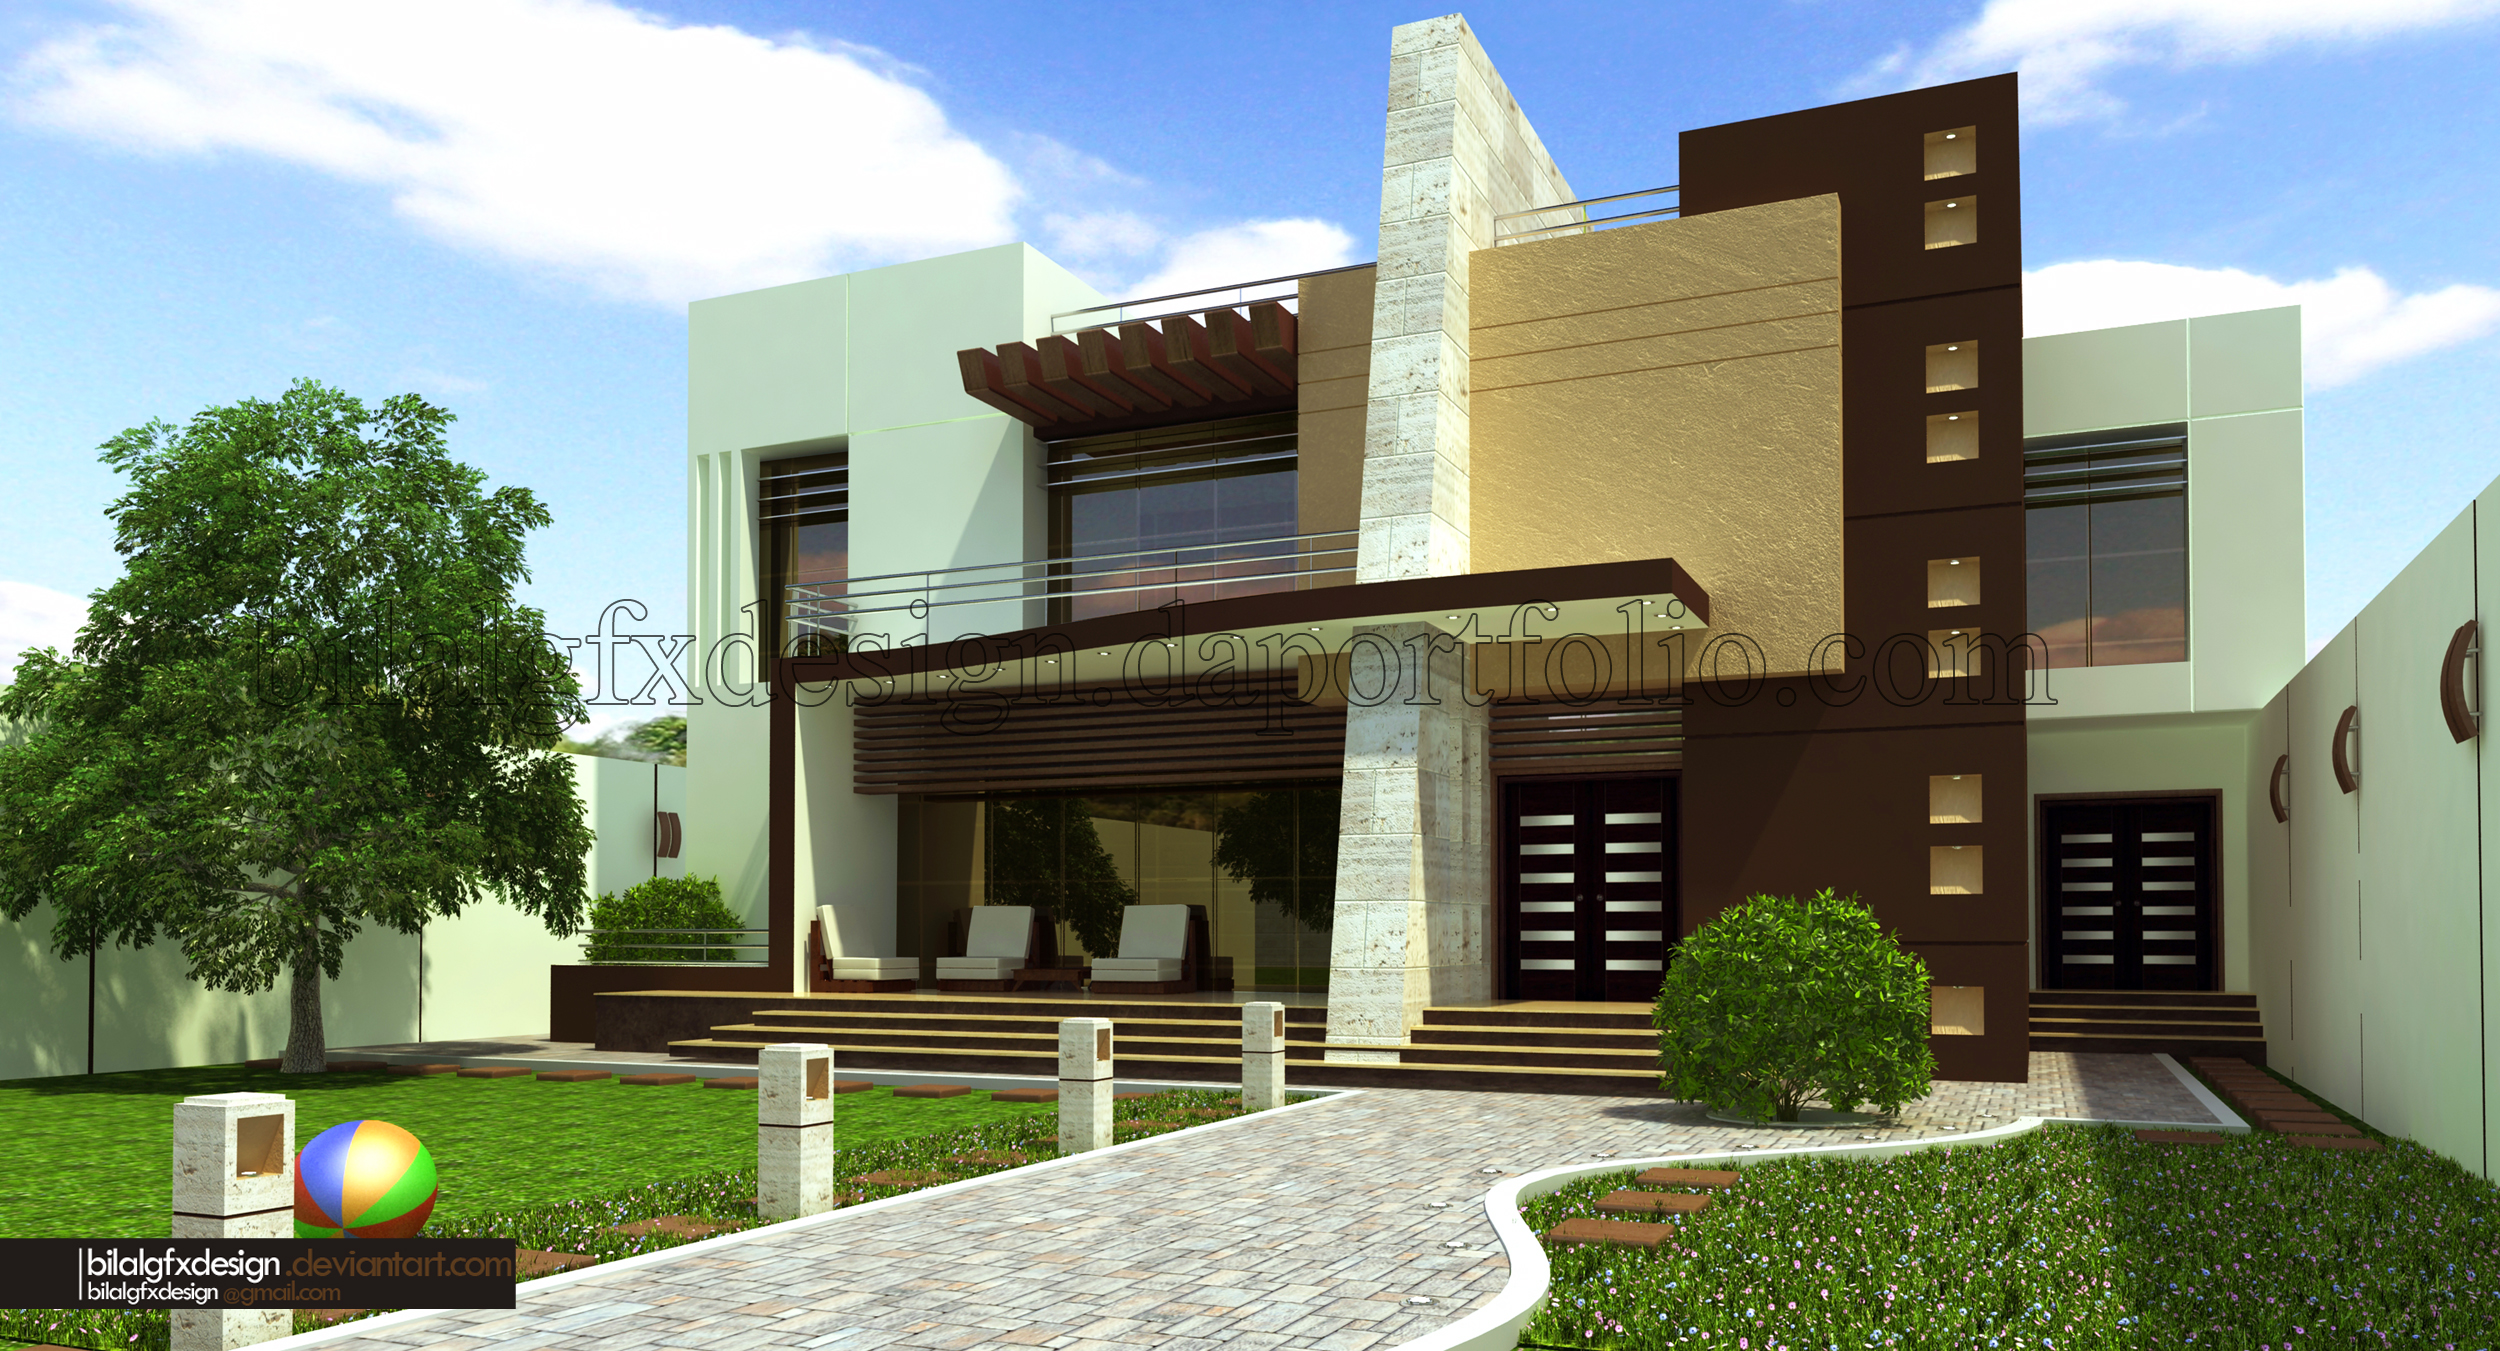 Modern villa 1 by bilalgfxdesign on deviantart for Modern house villa